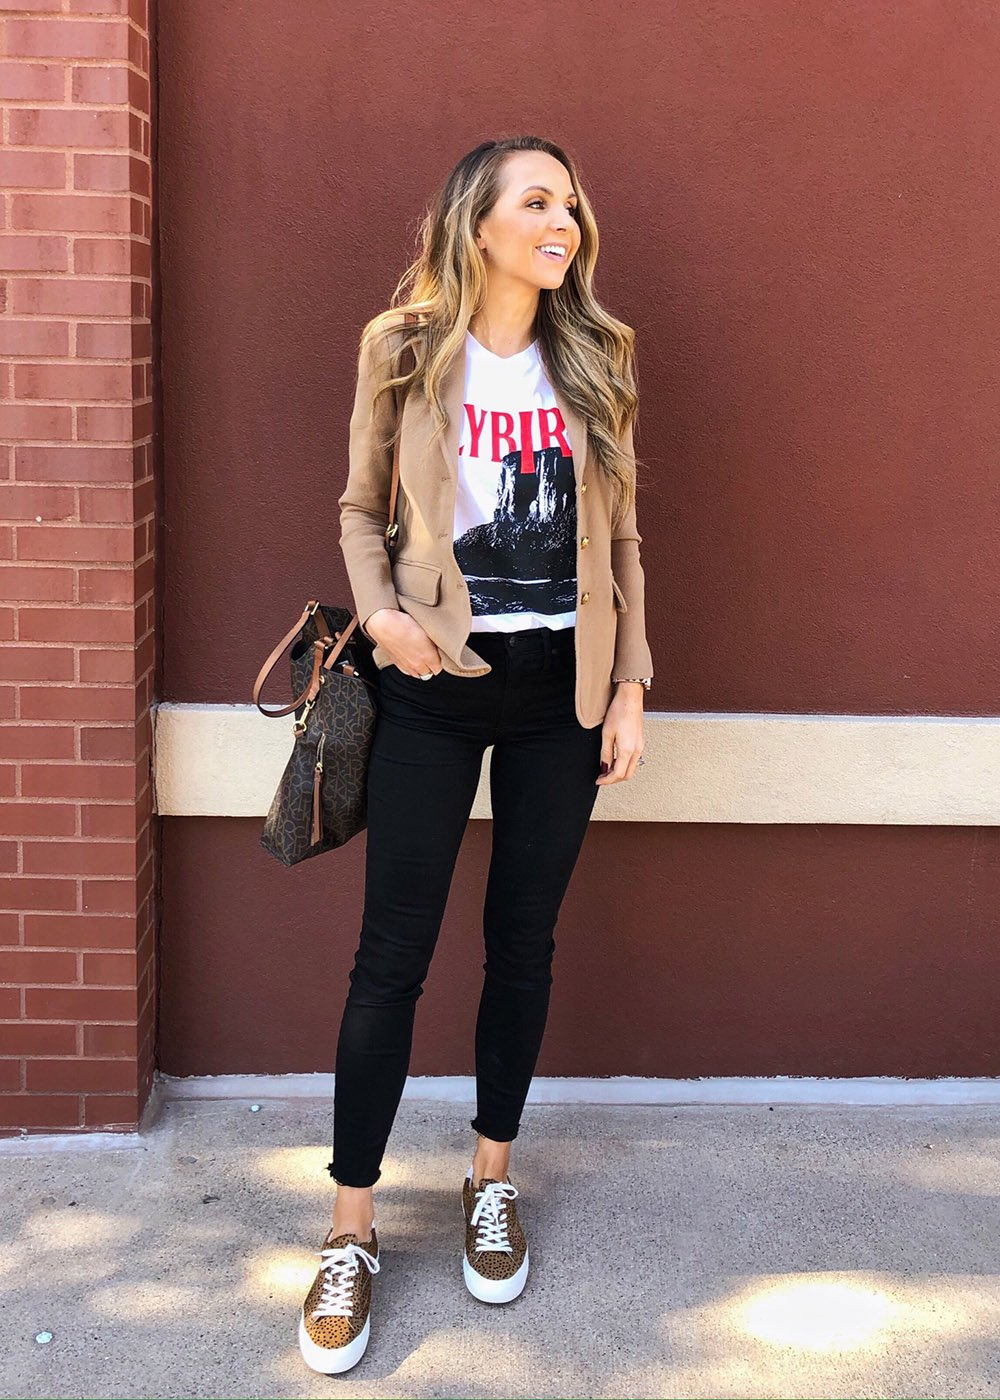 graphic tee with blazer and jeans